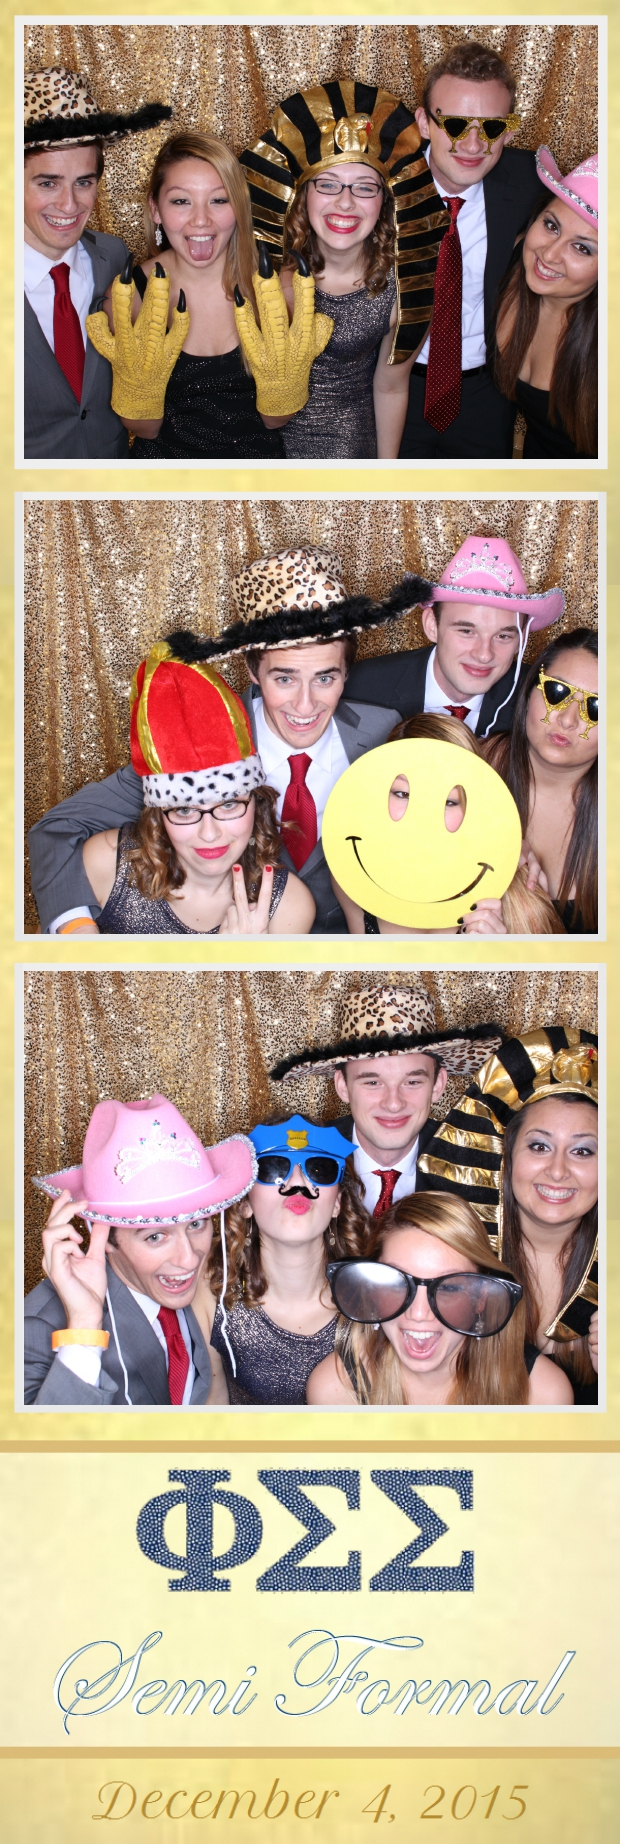 Guest House Events Photo Booth Phi Sigma Sigma Semi Formal (16).jpg